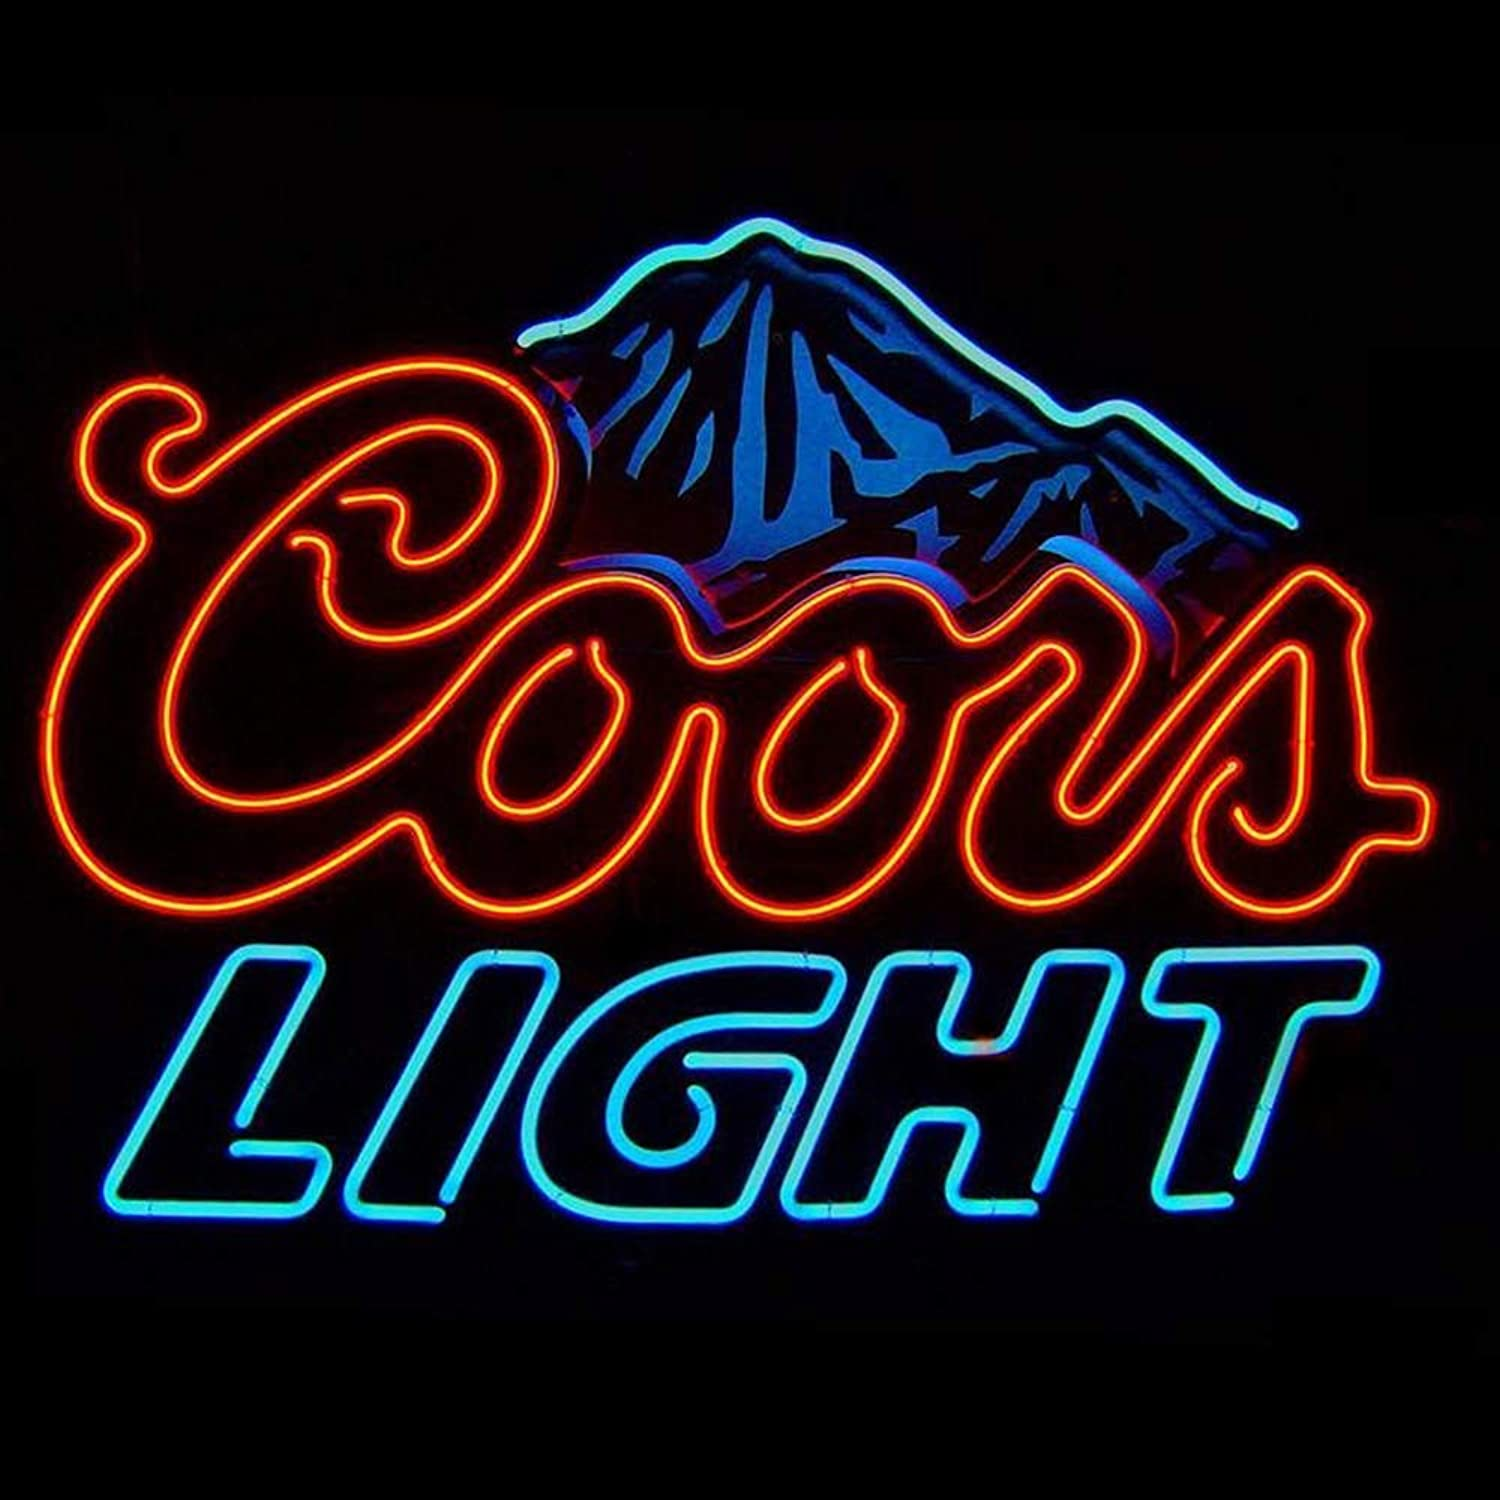 Coors Light Mountain Real Glass Beer Bar Pub Store Party Room Wall Windows Display Neon Signs 19x15